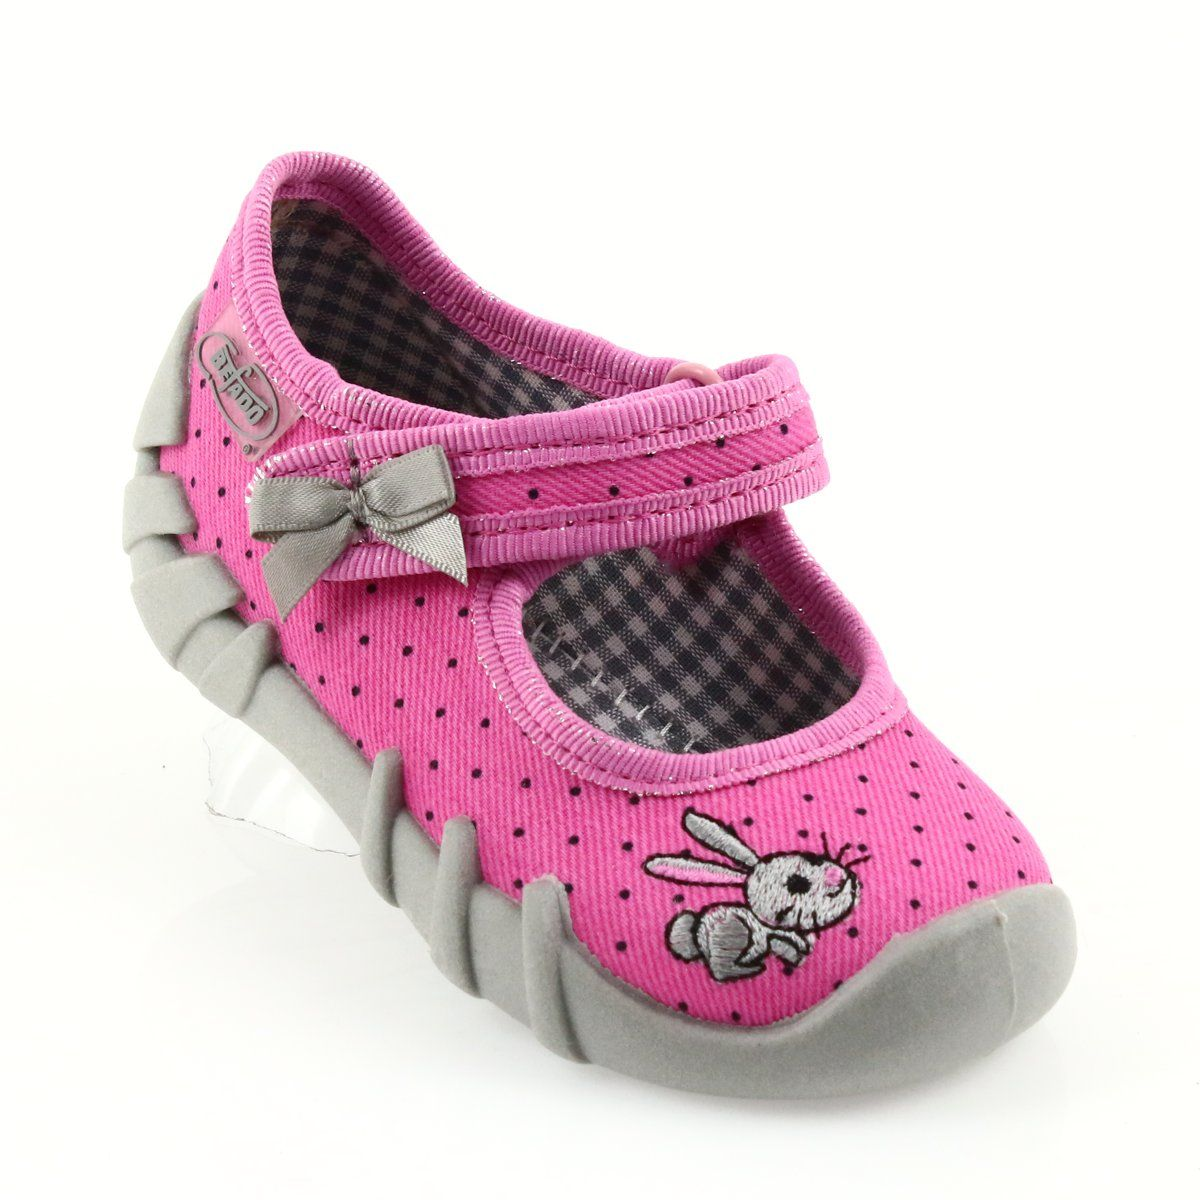 Befado Children S Shoes 109p169 Pink Childrens Shoes Kid Shoes Childrens Slippers